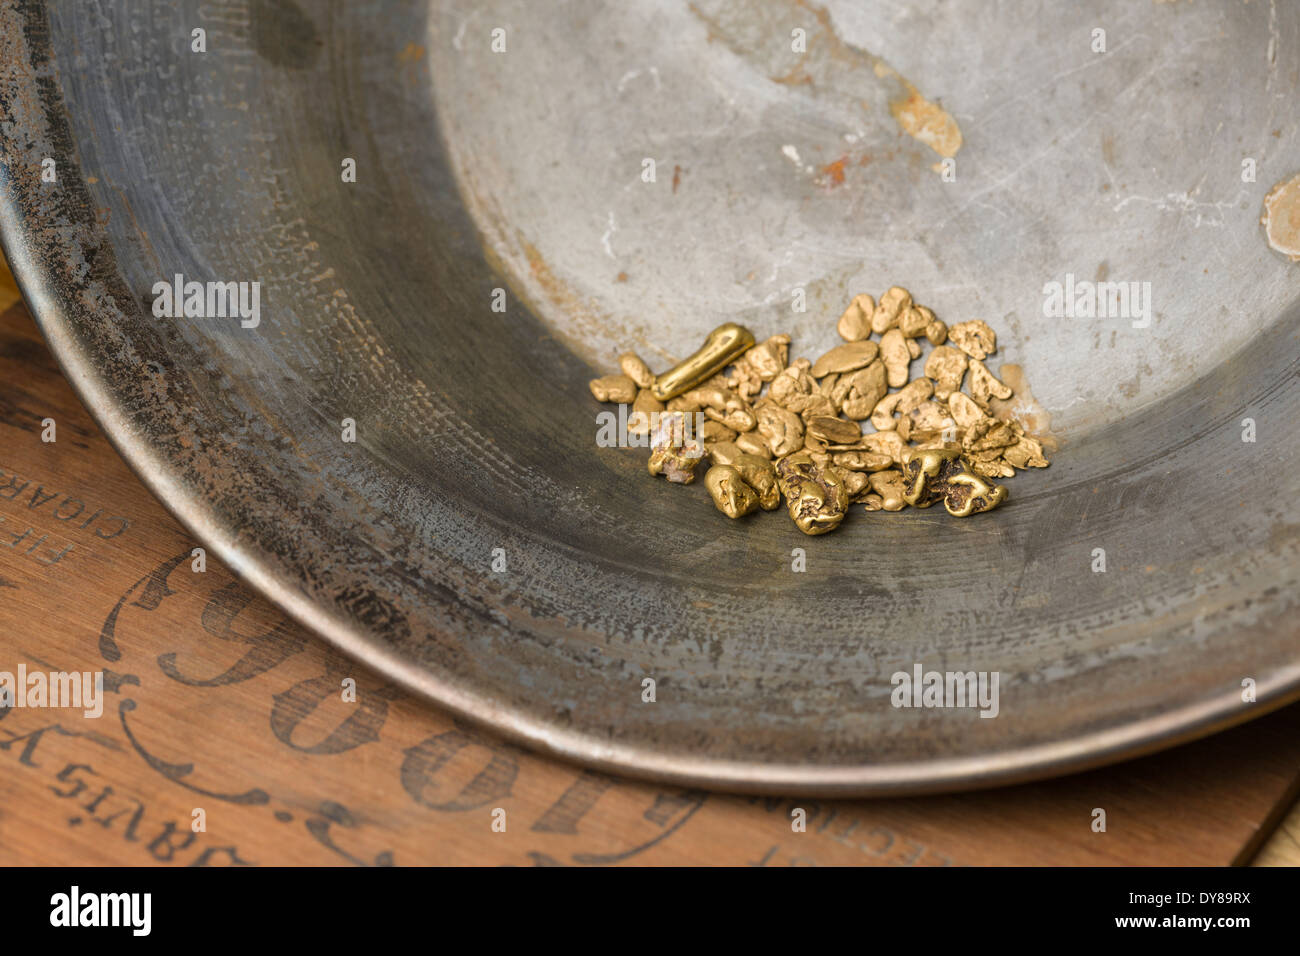 Close Up Of A Gold Pan With Gold Nuggets, Alaska - Stock Image